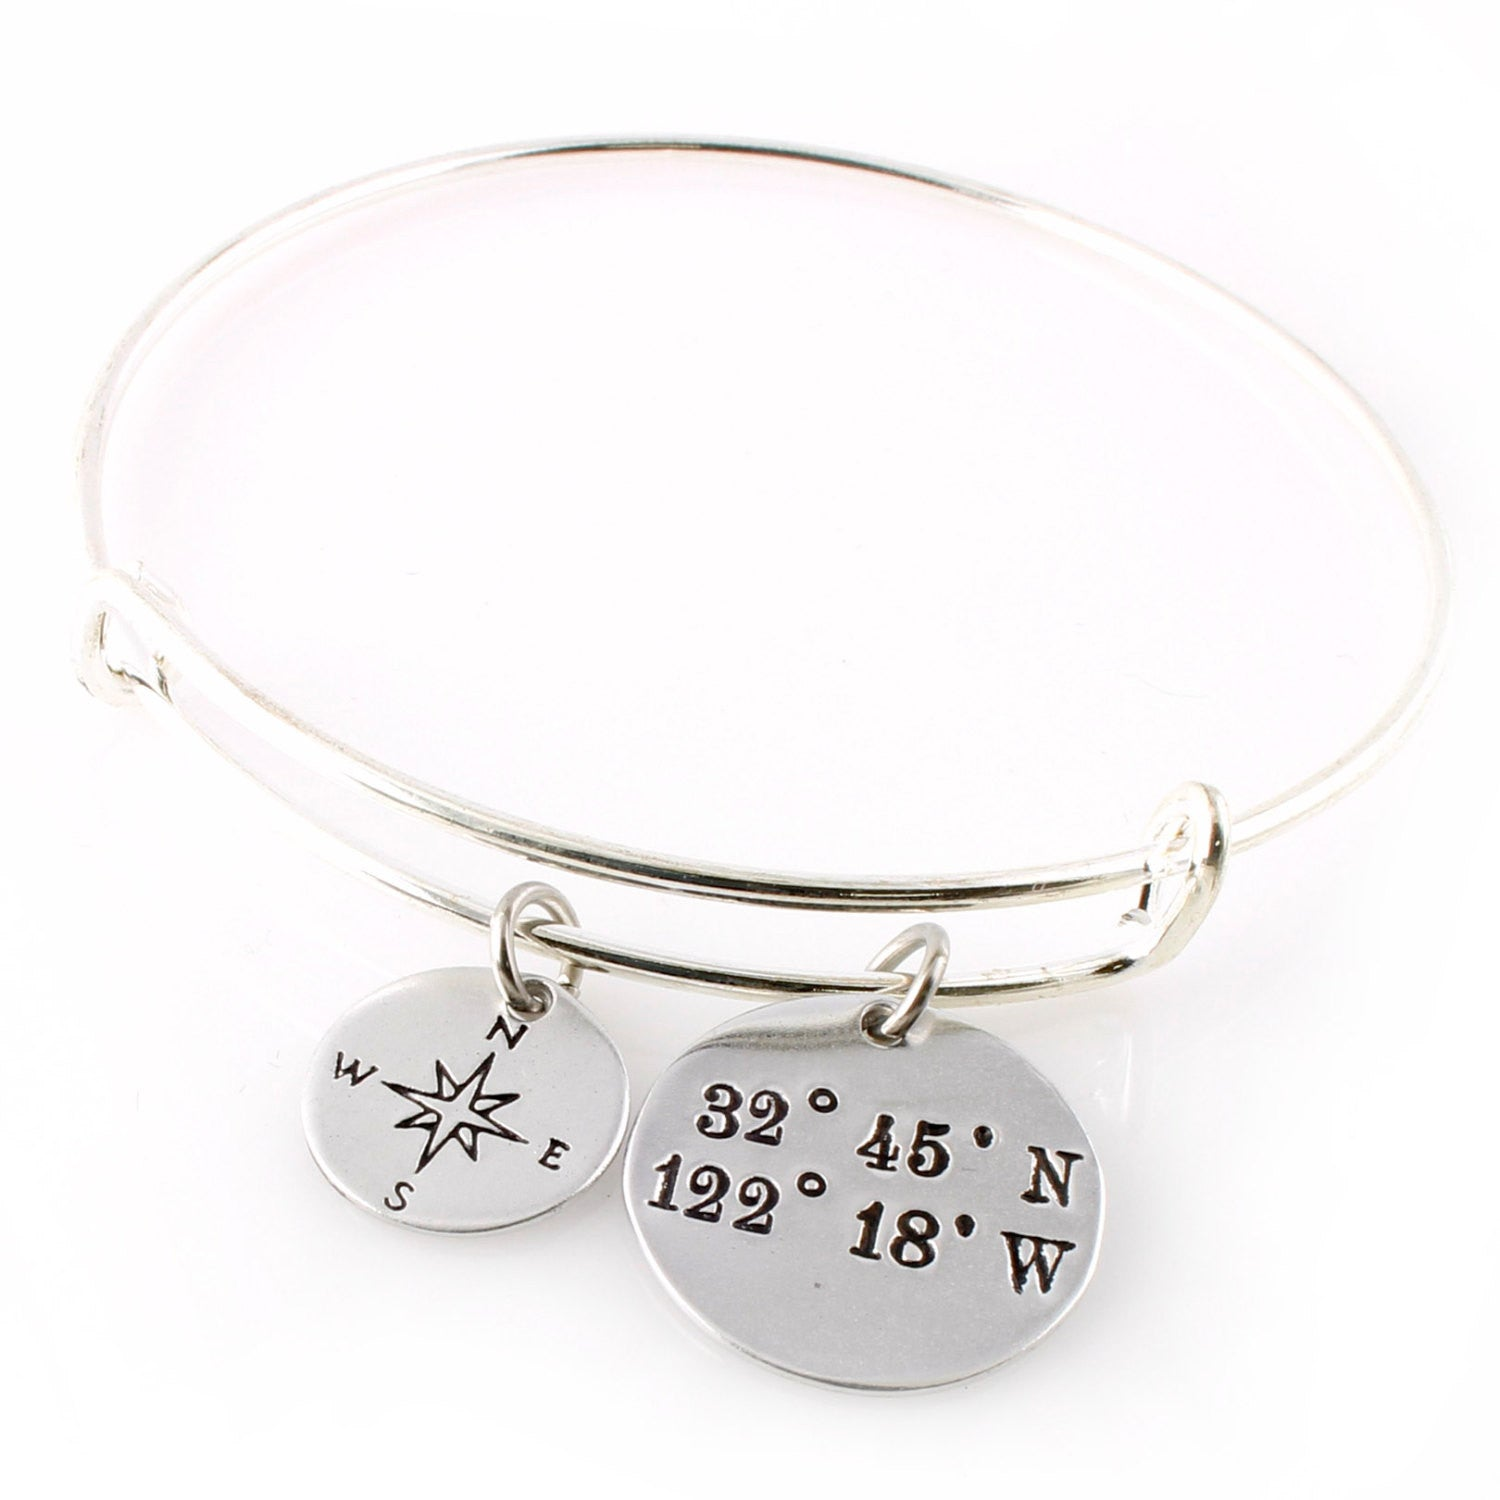 coordinates products bracelet set cuff lat long mg spiffing